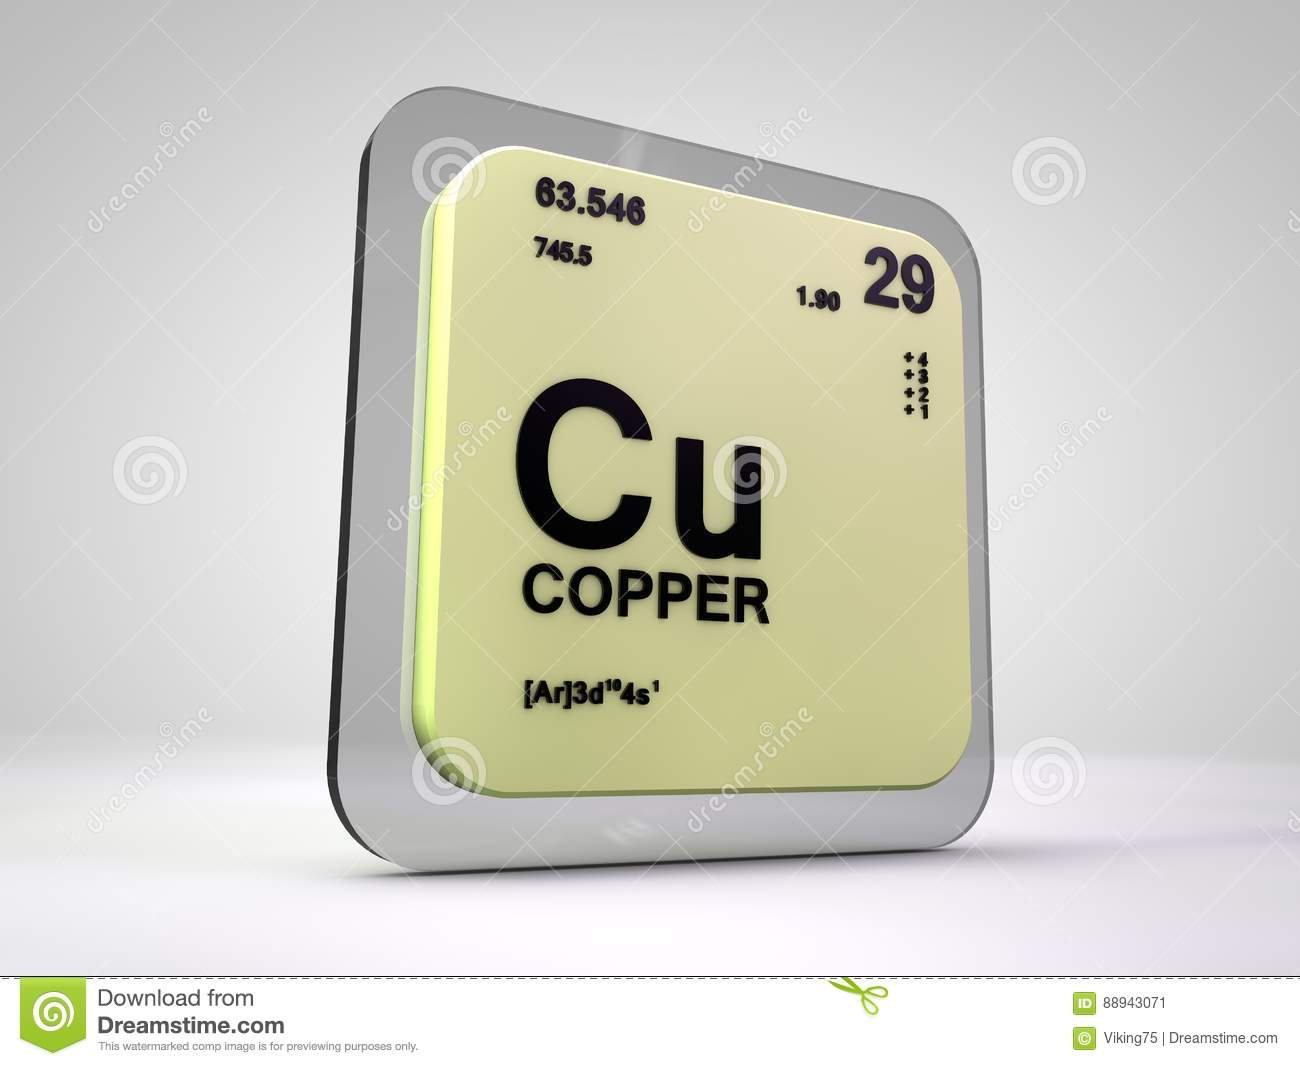 Copper cu chemical element periodic table stock illustration copper cu chemical element periodic table biocorpaavc Choice Image